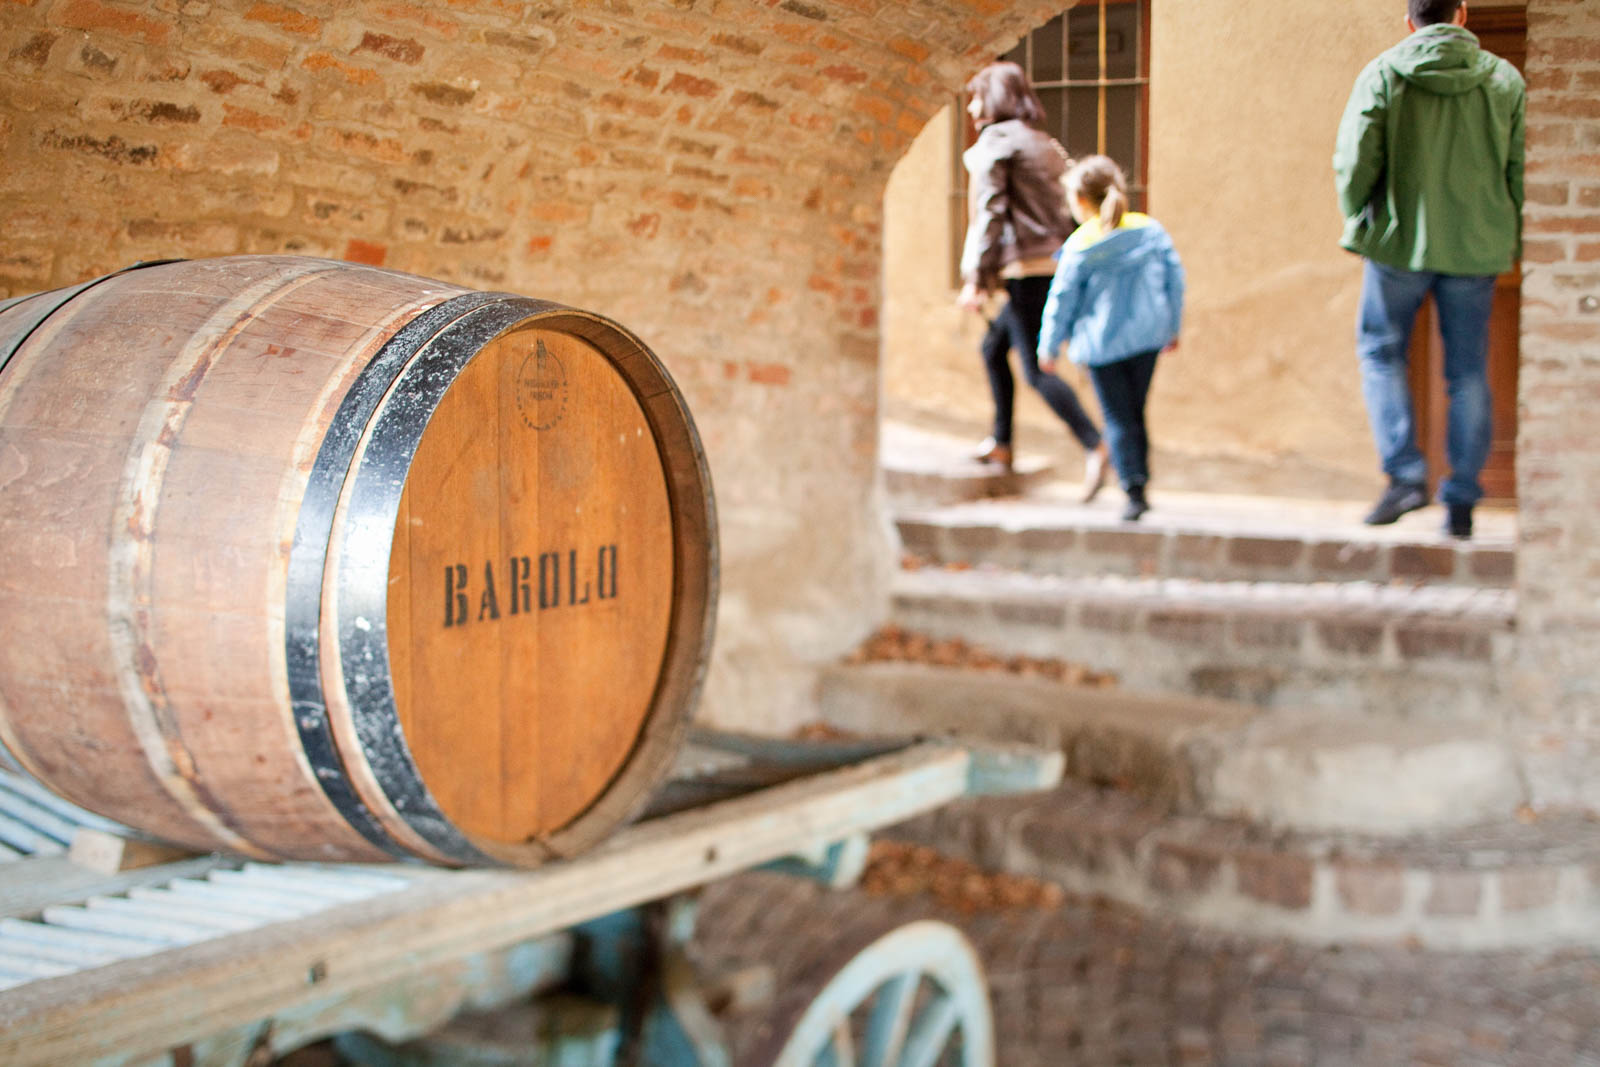 Barrel in Barolo, Italy. ©Kevin Day